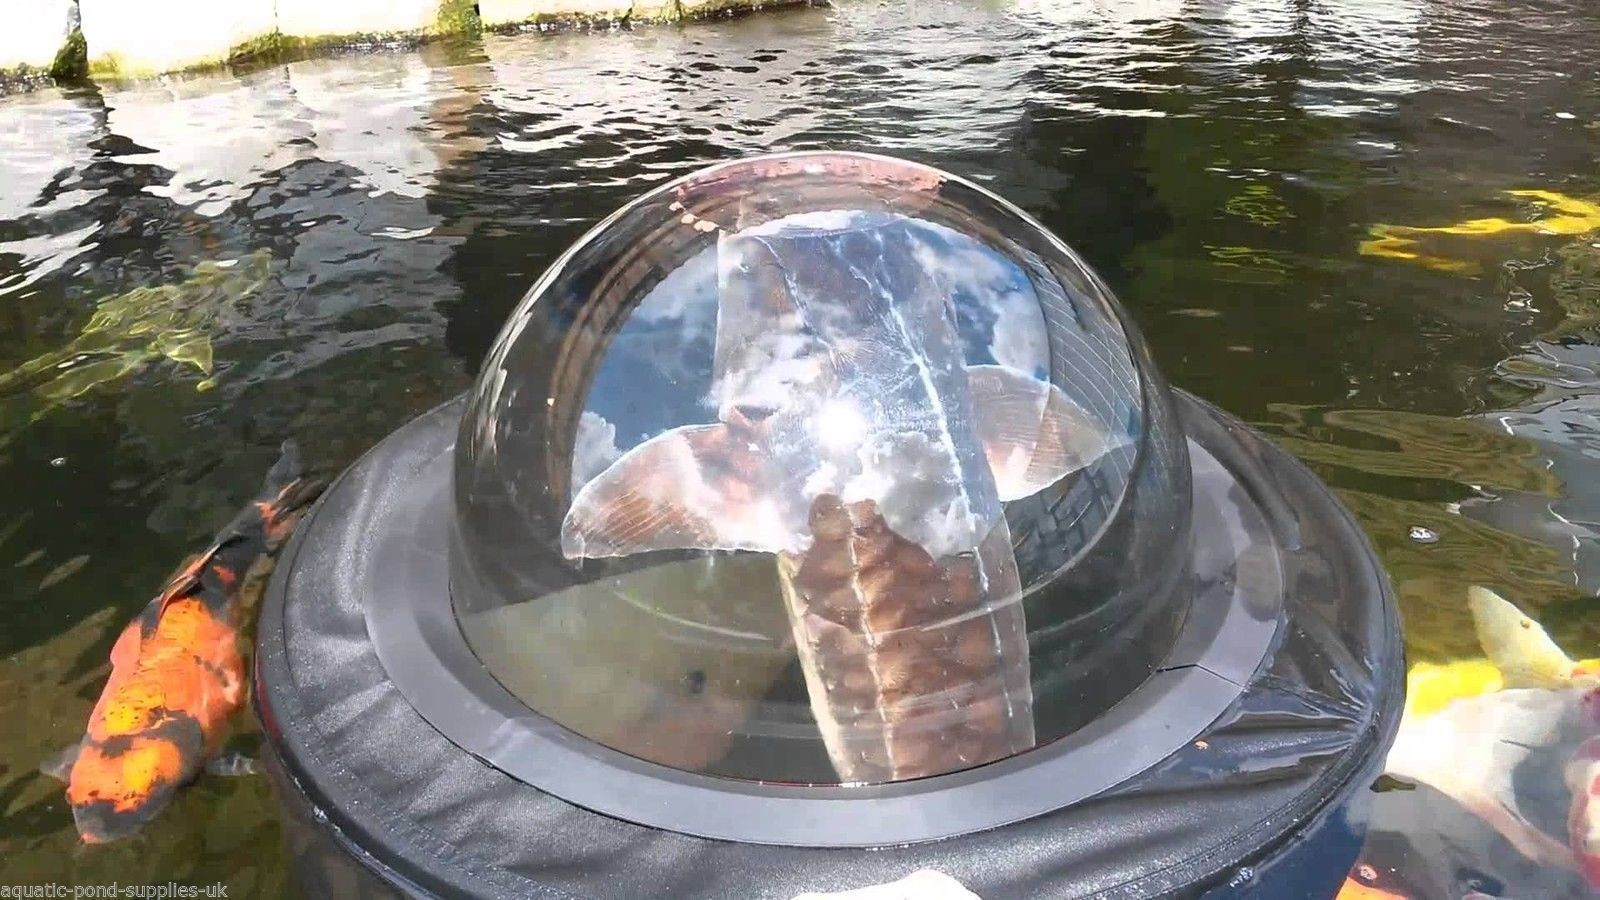 velda floating fish sphere dome garden pond water koi